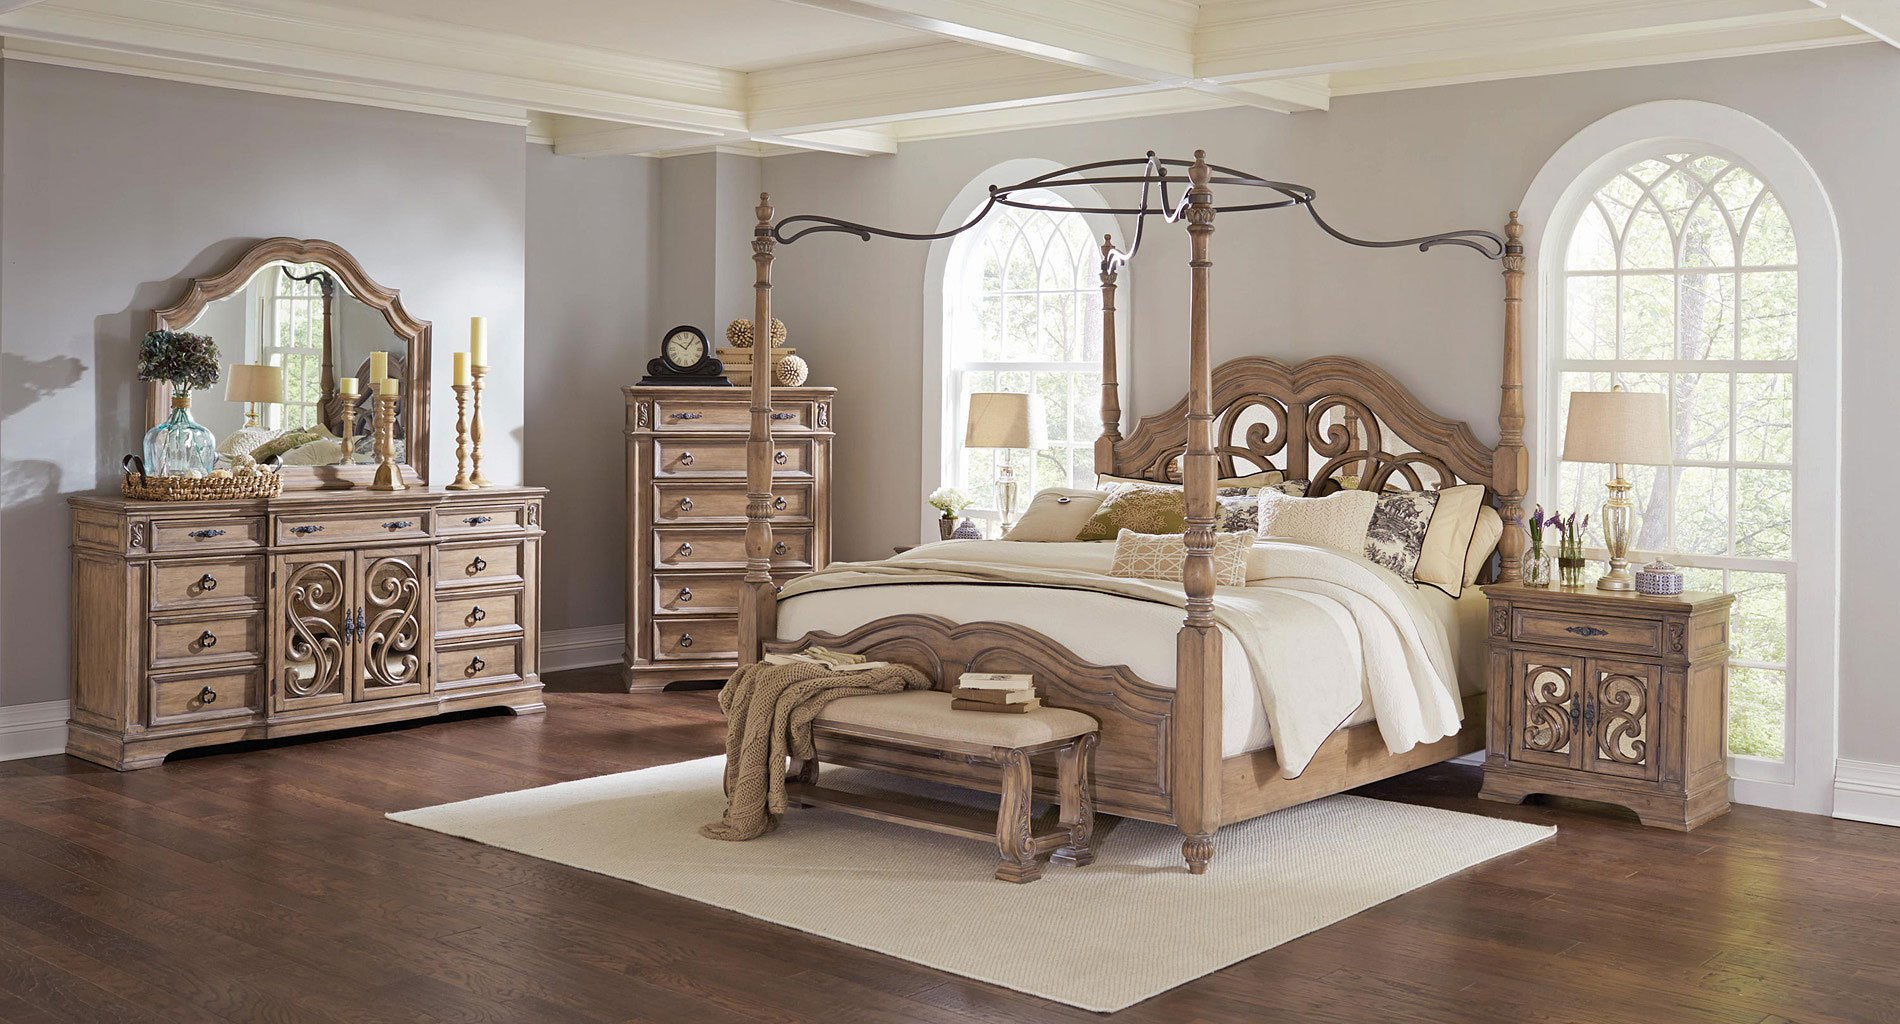 North Shore 6-Piece King Bedroom Set w/ Canopy by Ashley Furniture ...